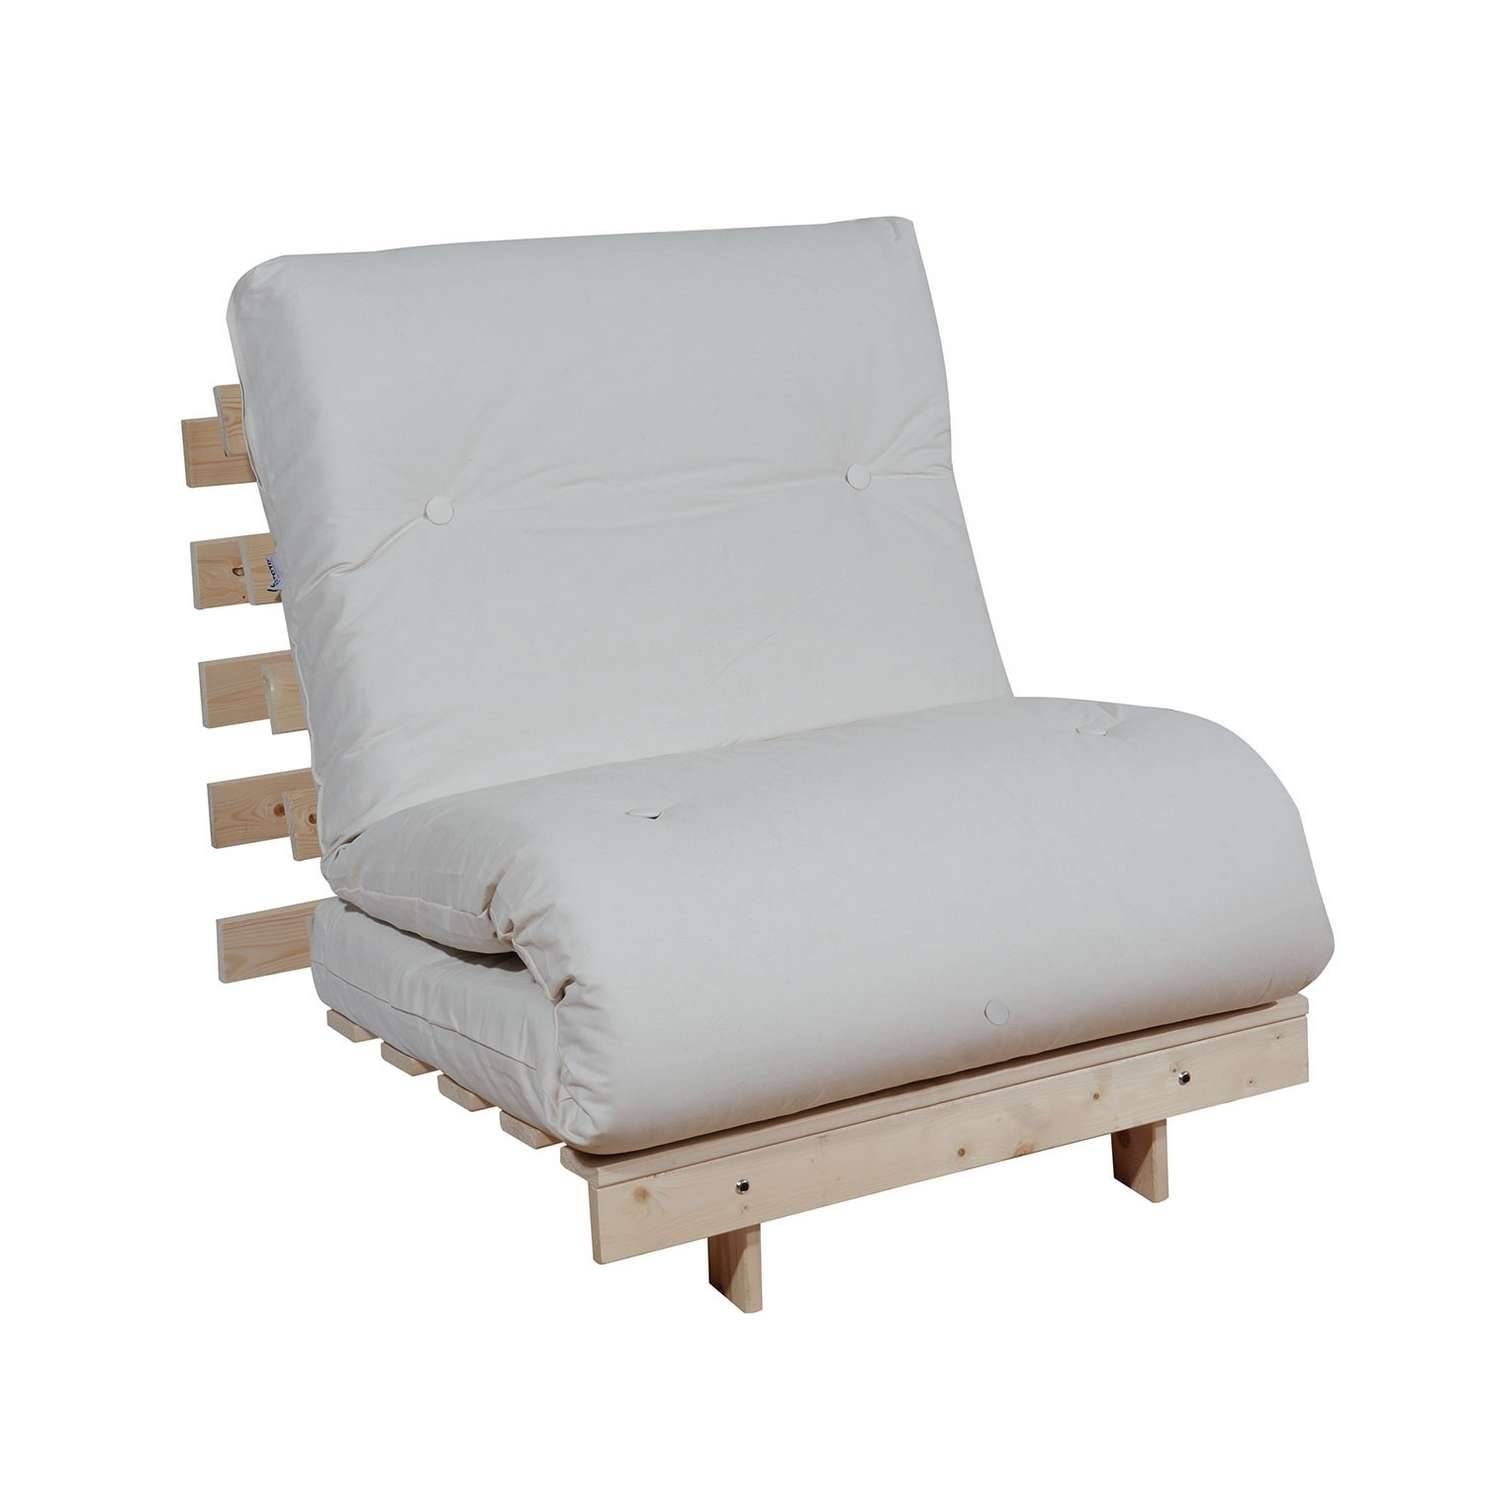 Awesome Futon Single Chair Bed Single Chair Bed Ebay | Furniture Ideas For Cheap Single Sofa Bed Chairs (View 1 of 30)